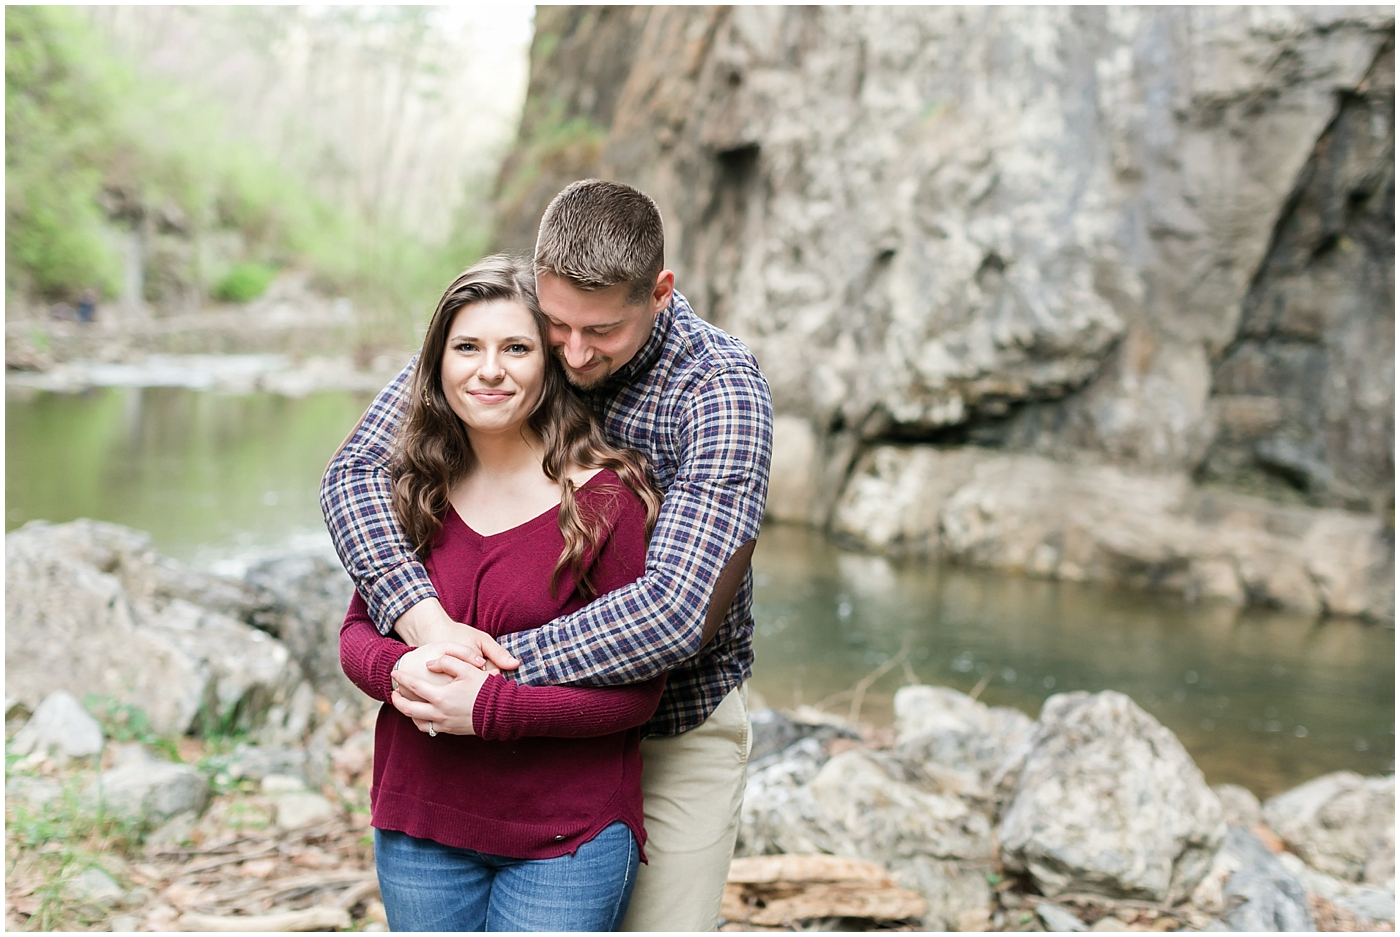 natural bridge virginia state park engagement photography adventurous couple engagements jessica ryan photography